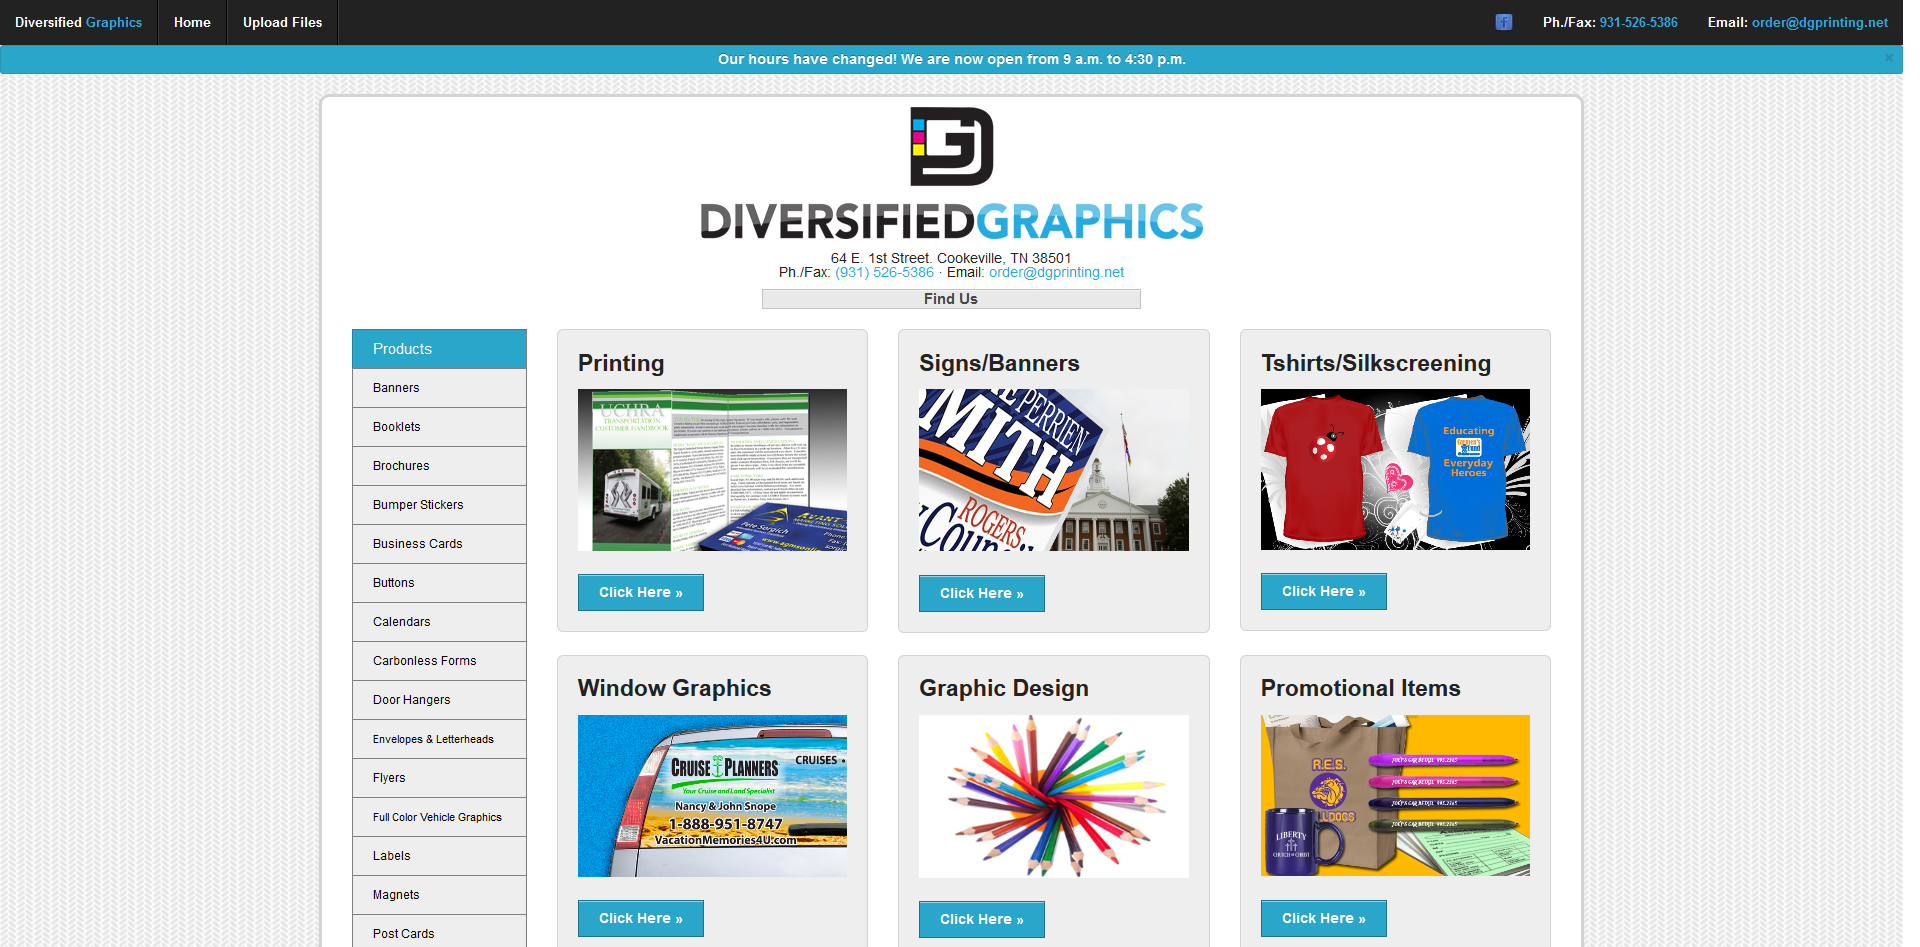 Diversified Graphics